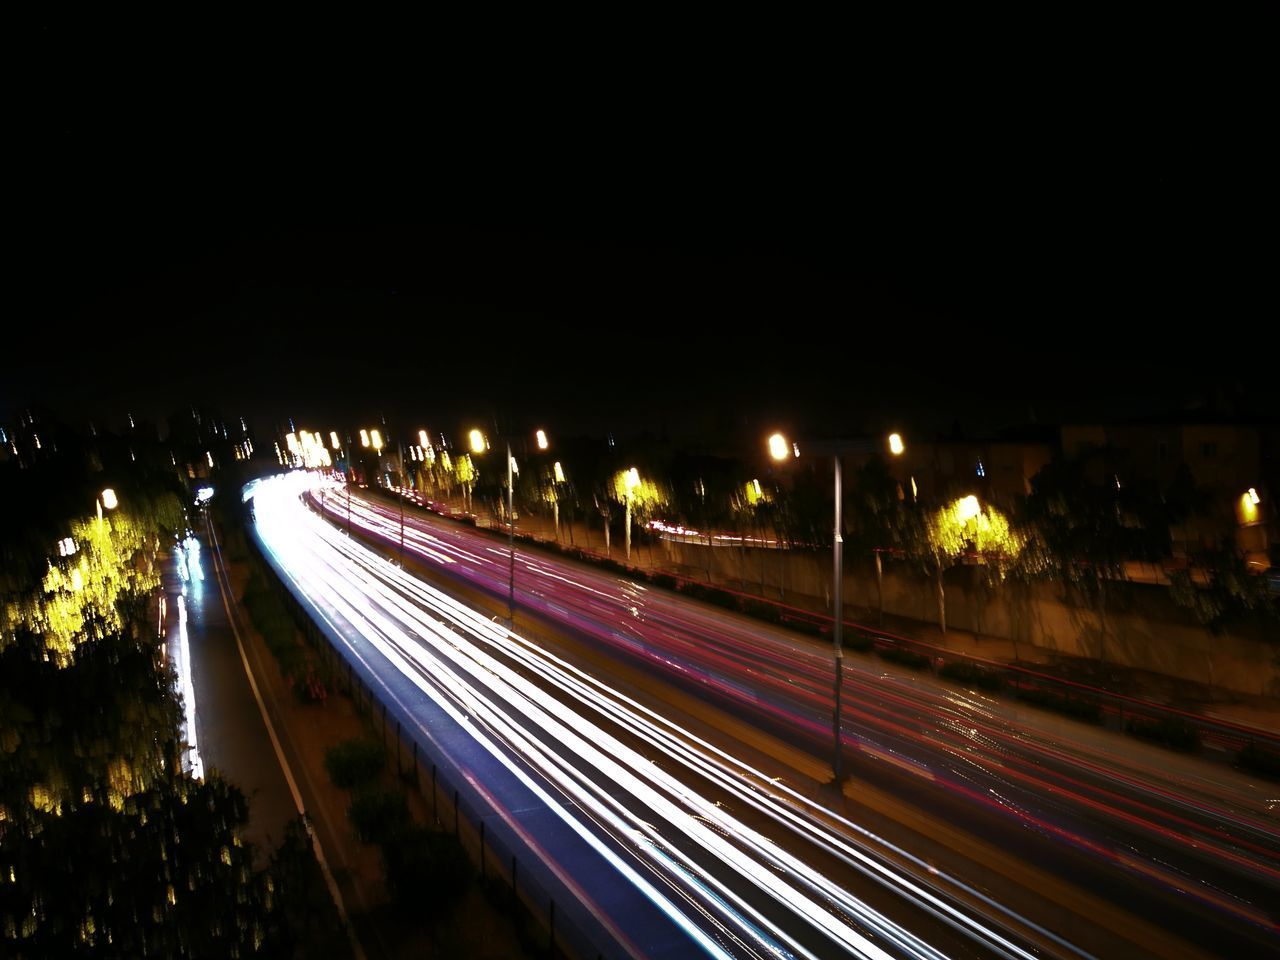 illuminated, night, speed, light trail, long exposure, motion, blurred motion, high street, transportation, high angle view, no people, outdoors, city, street light, road, architecture